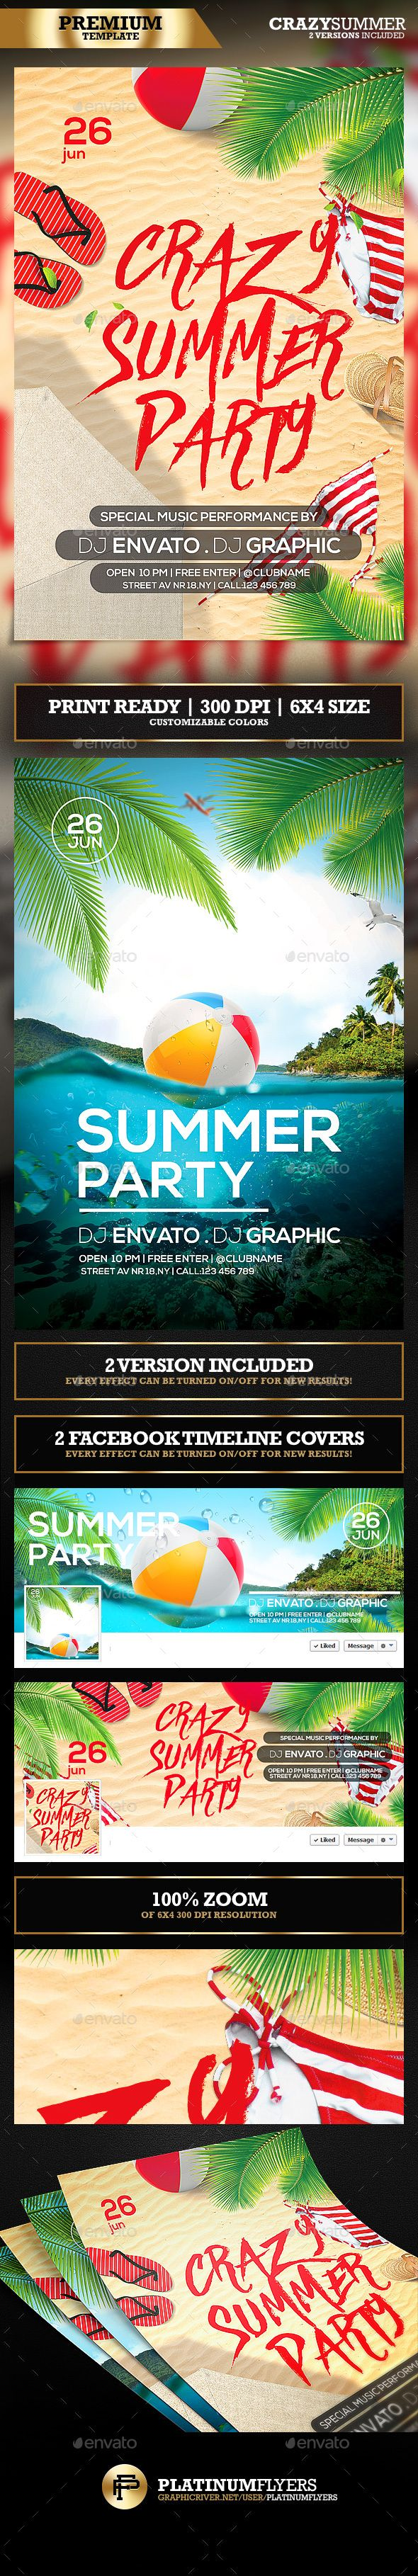 20 best flyer protoshop templates images on pinterest font logo summer party flyer templates 2 version included fandeluxe Gallery